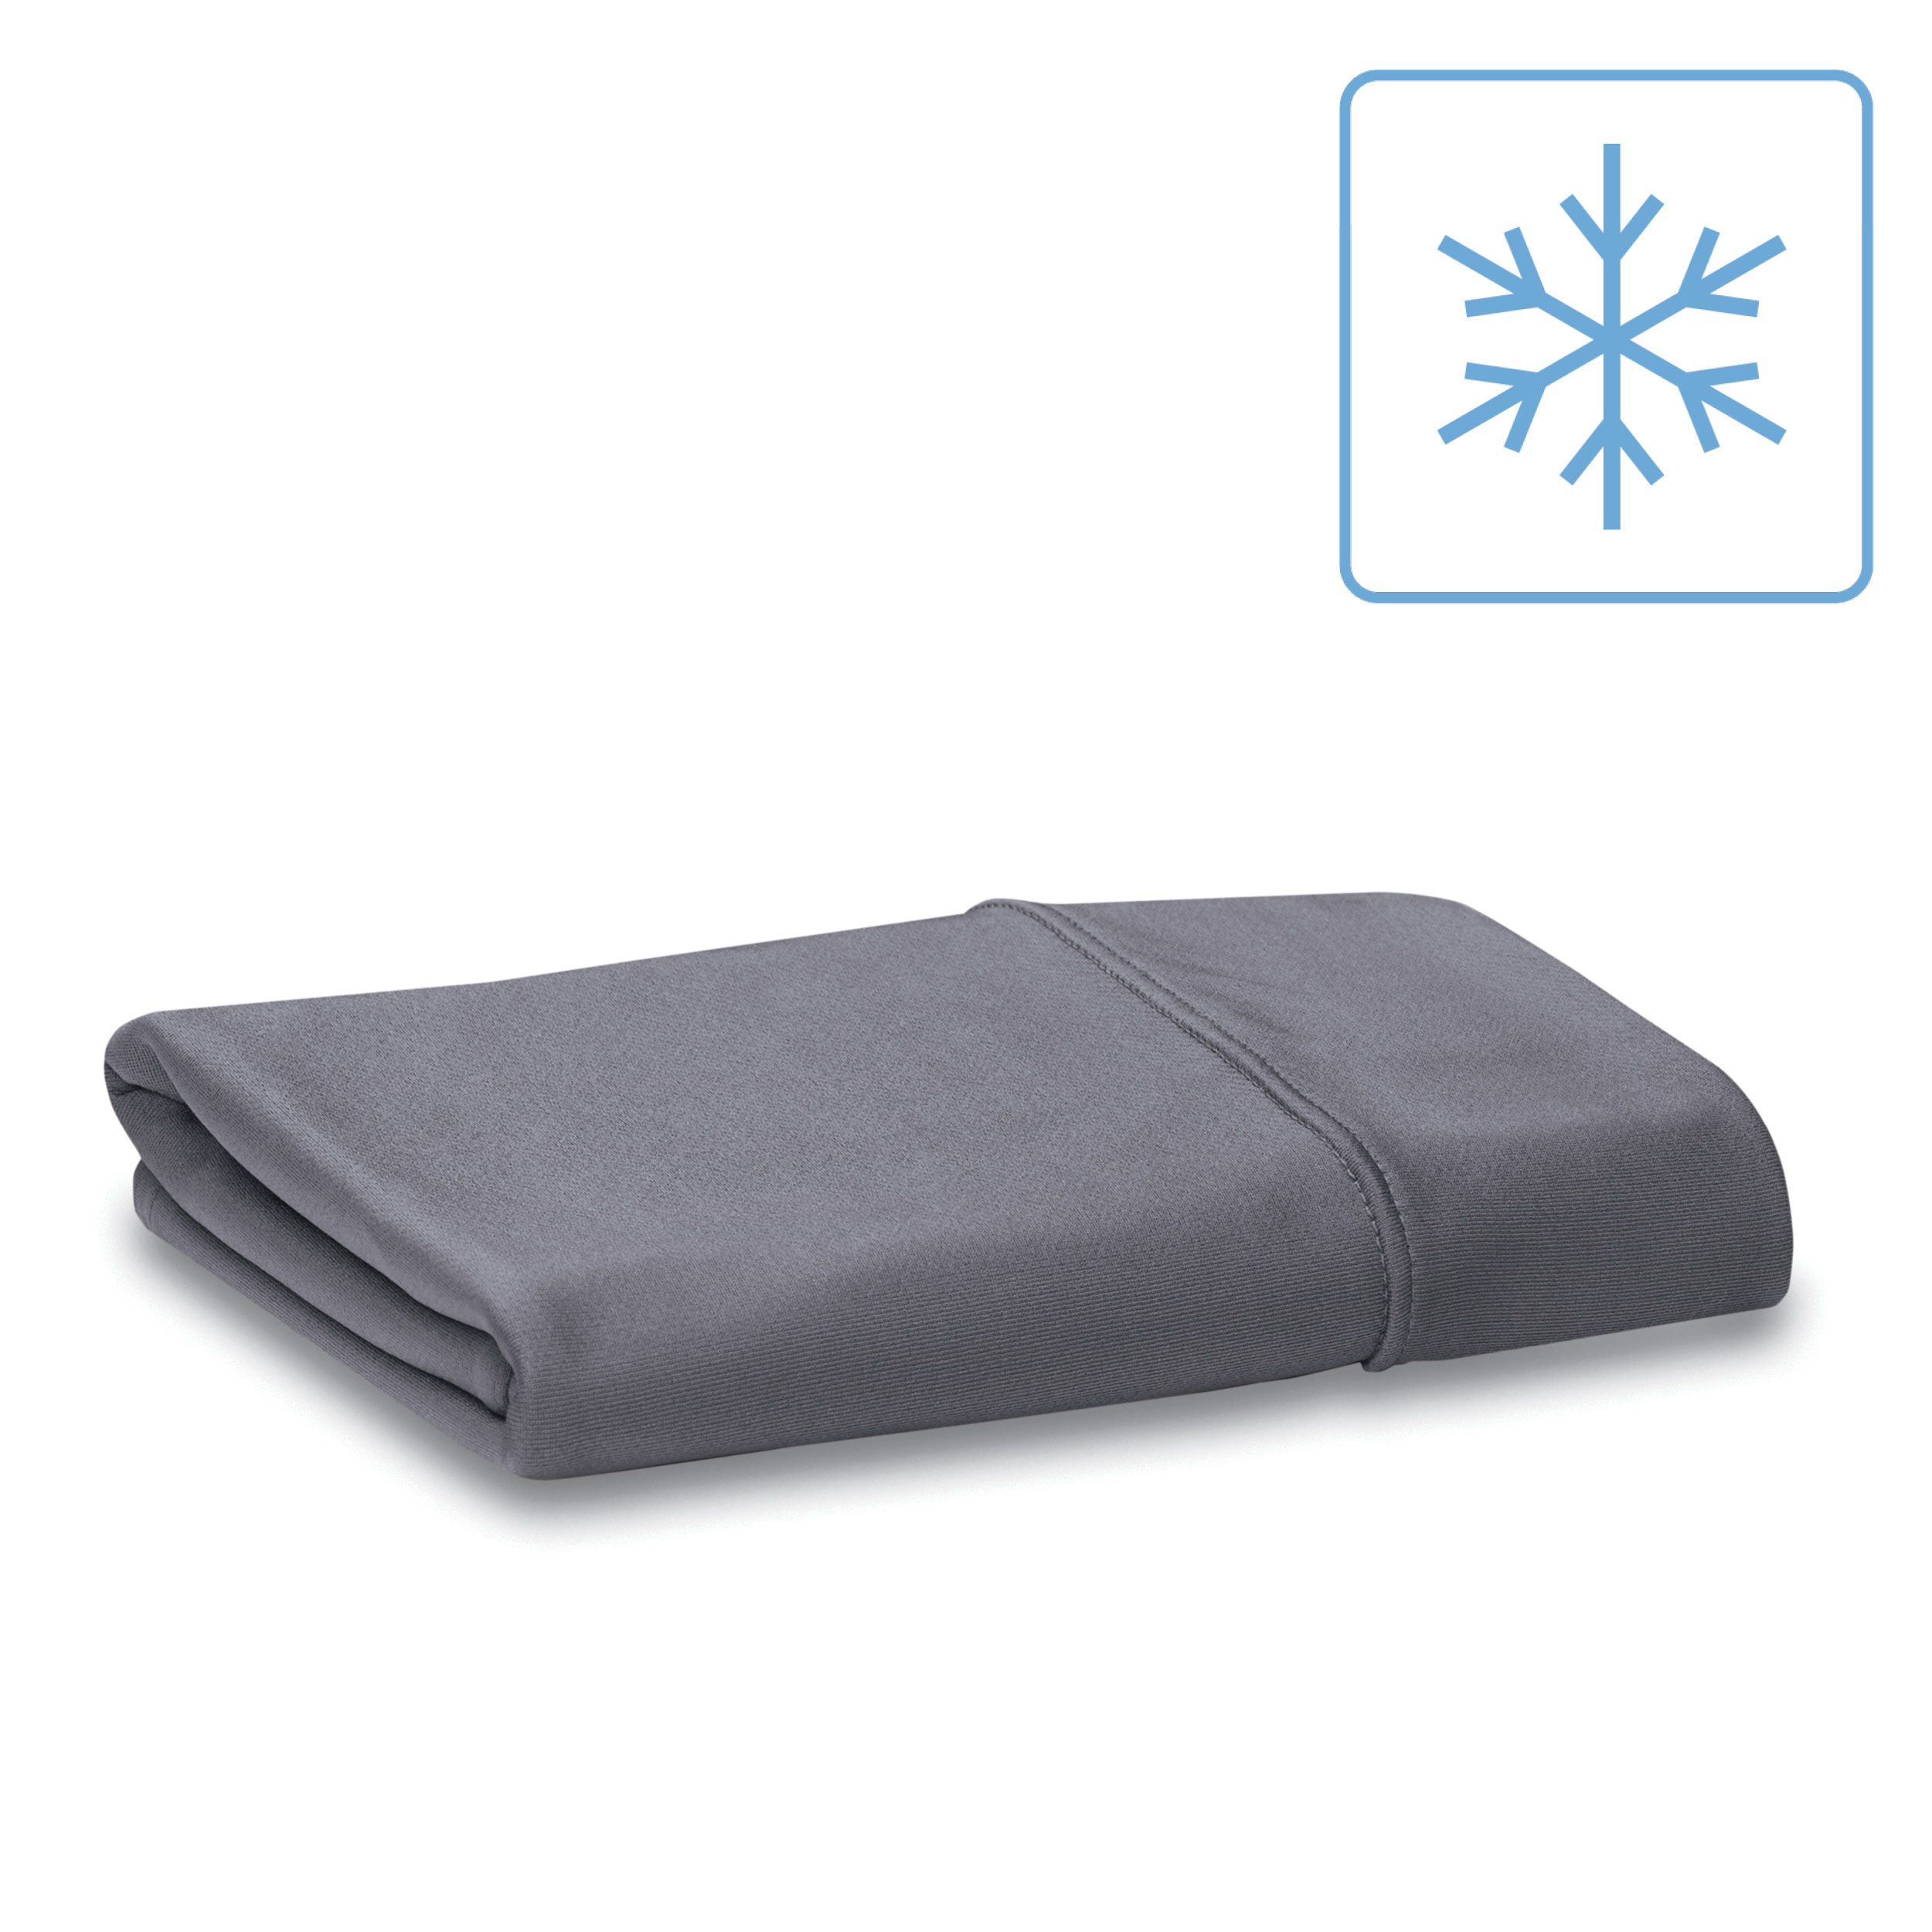 extraordinary market best on sleepers blanket pillows cooling for gallery the side rated pillow cushion